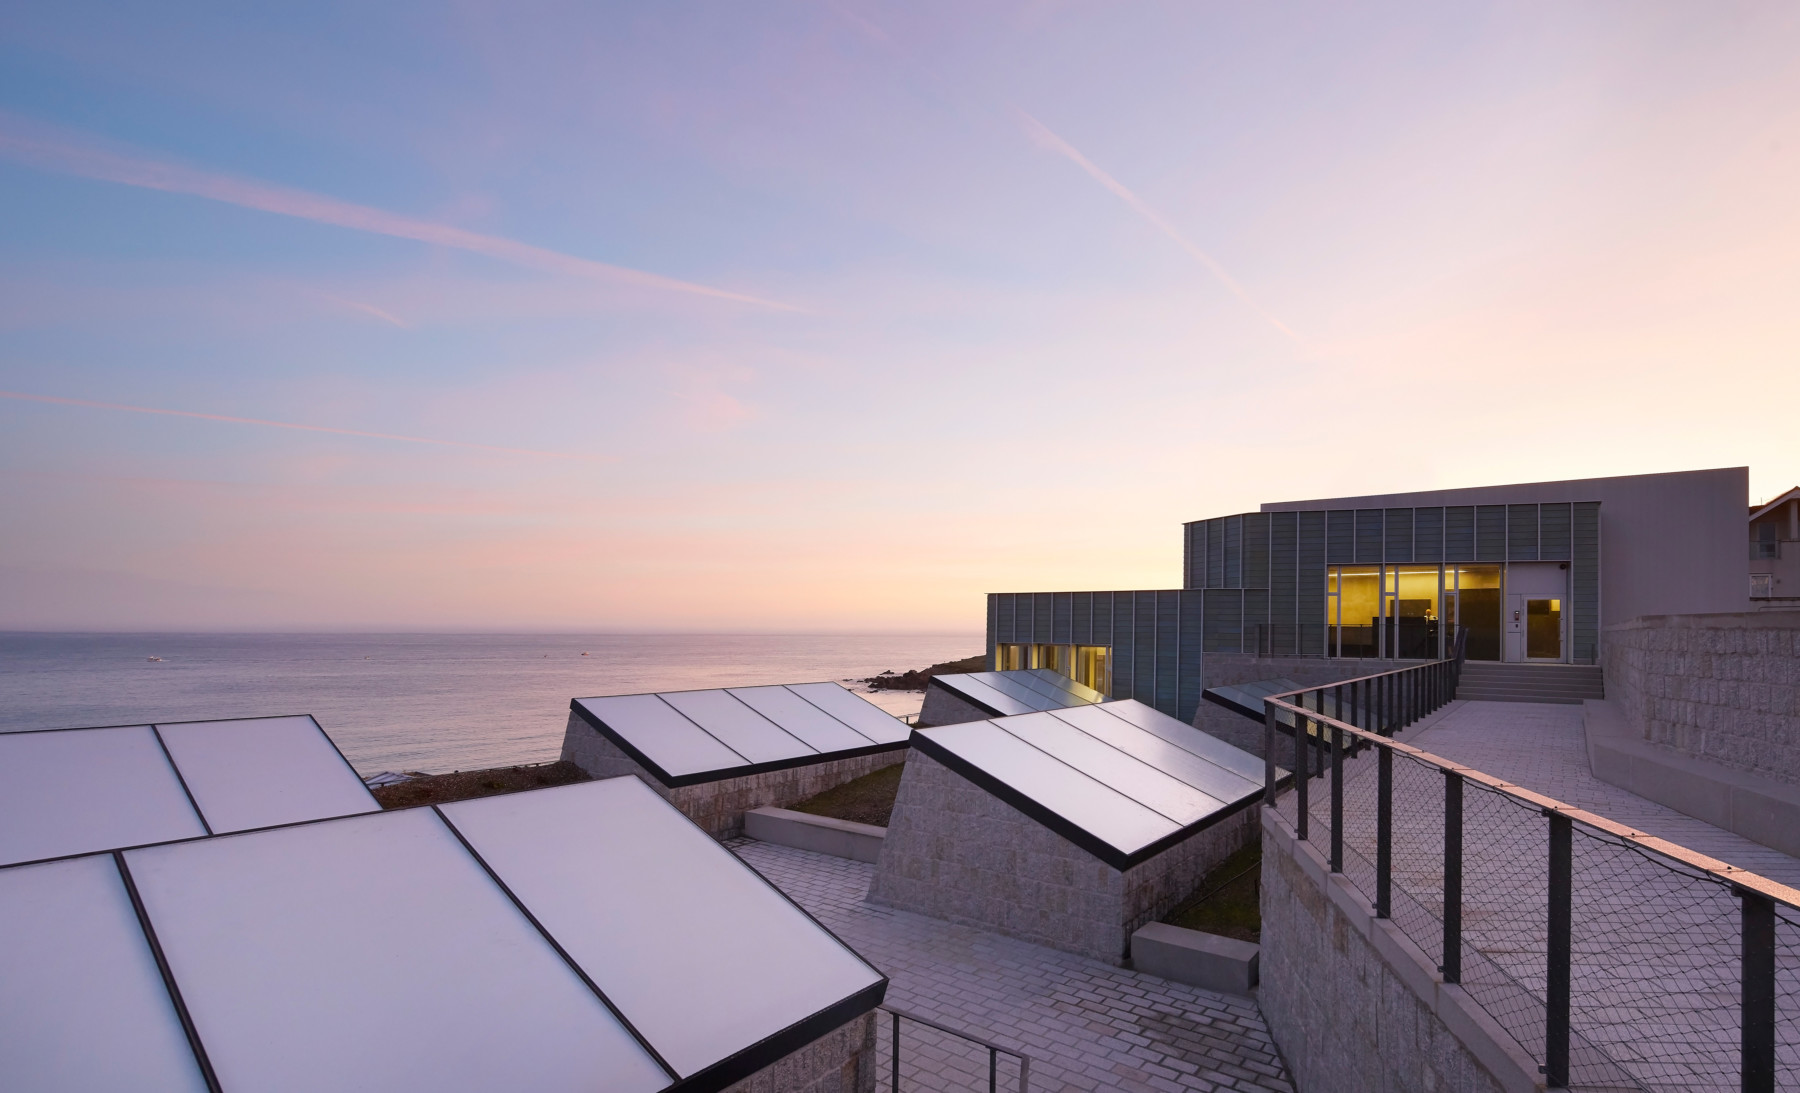 Jamie-fobert-architects-tate-st-ives-ceramic-rooflight-granite-beach-cornwall-sky-Hufton-Crow